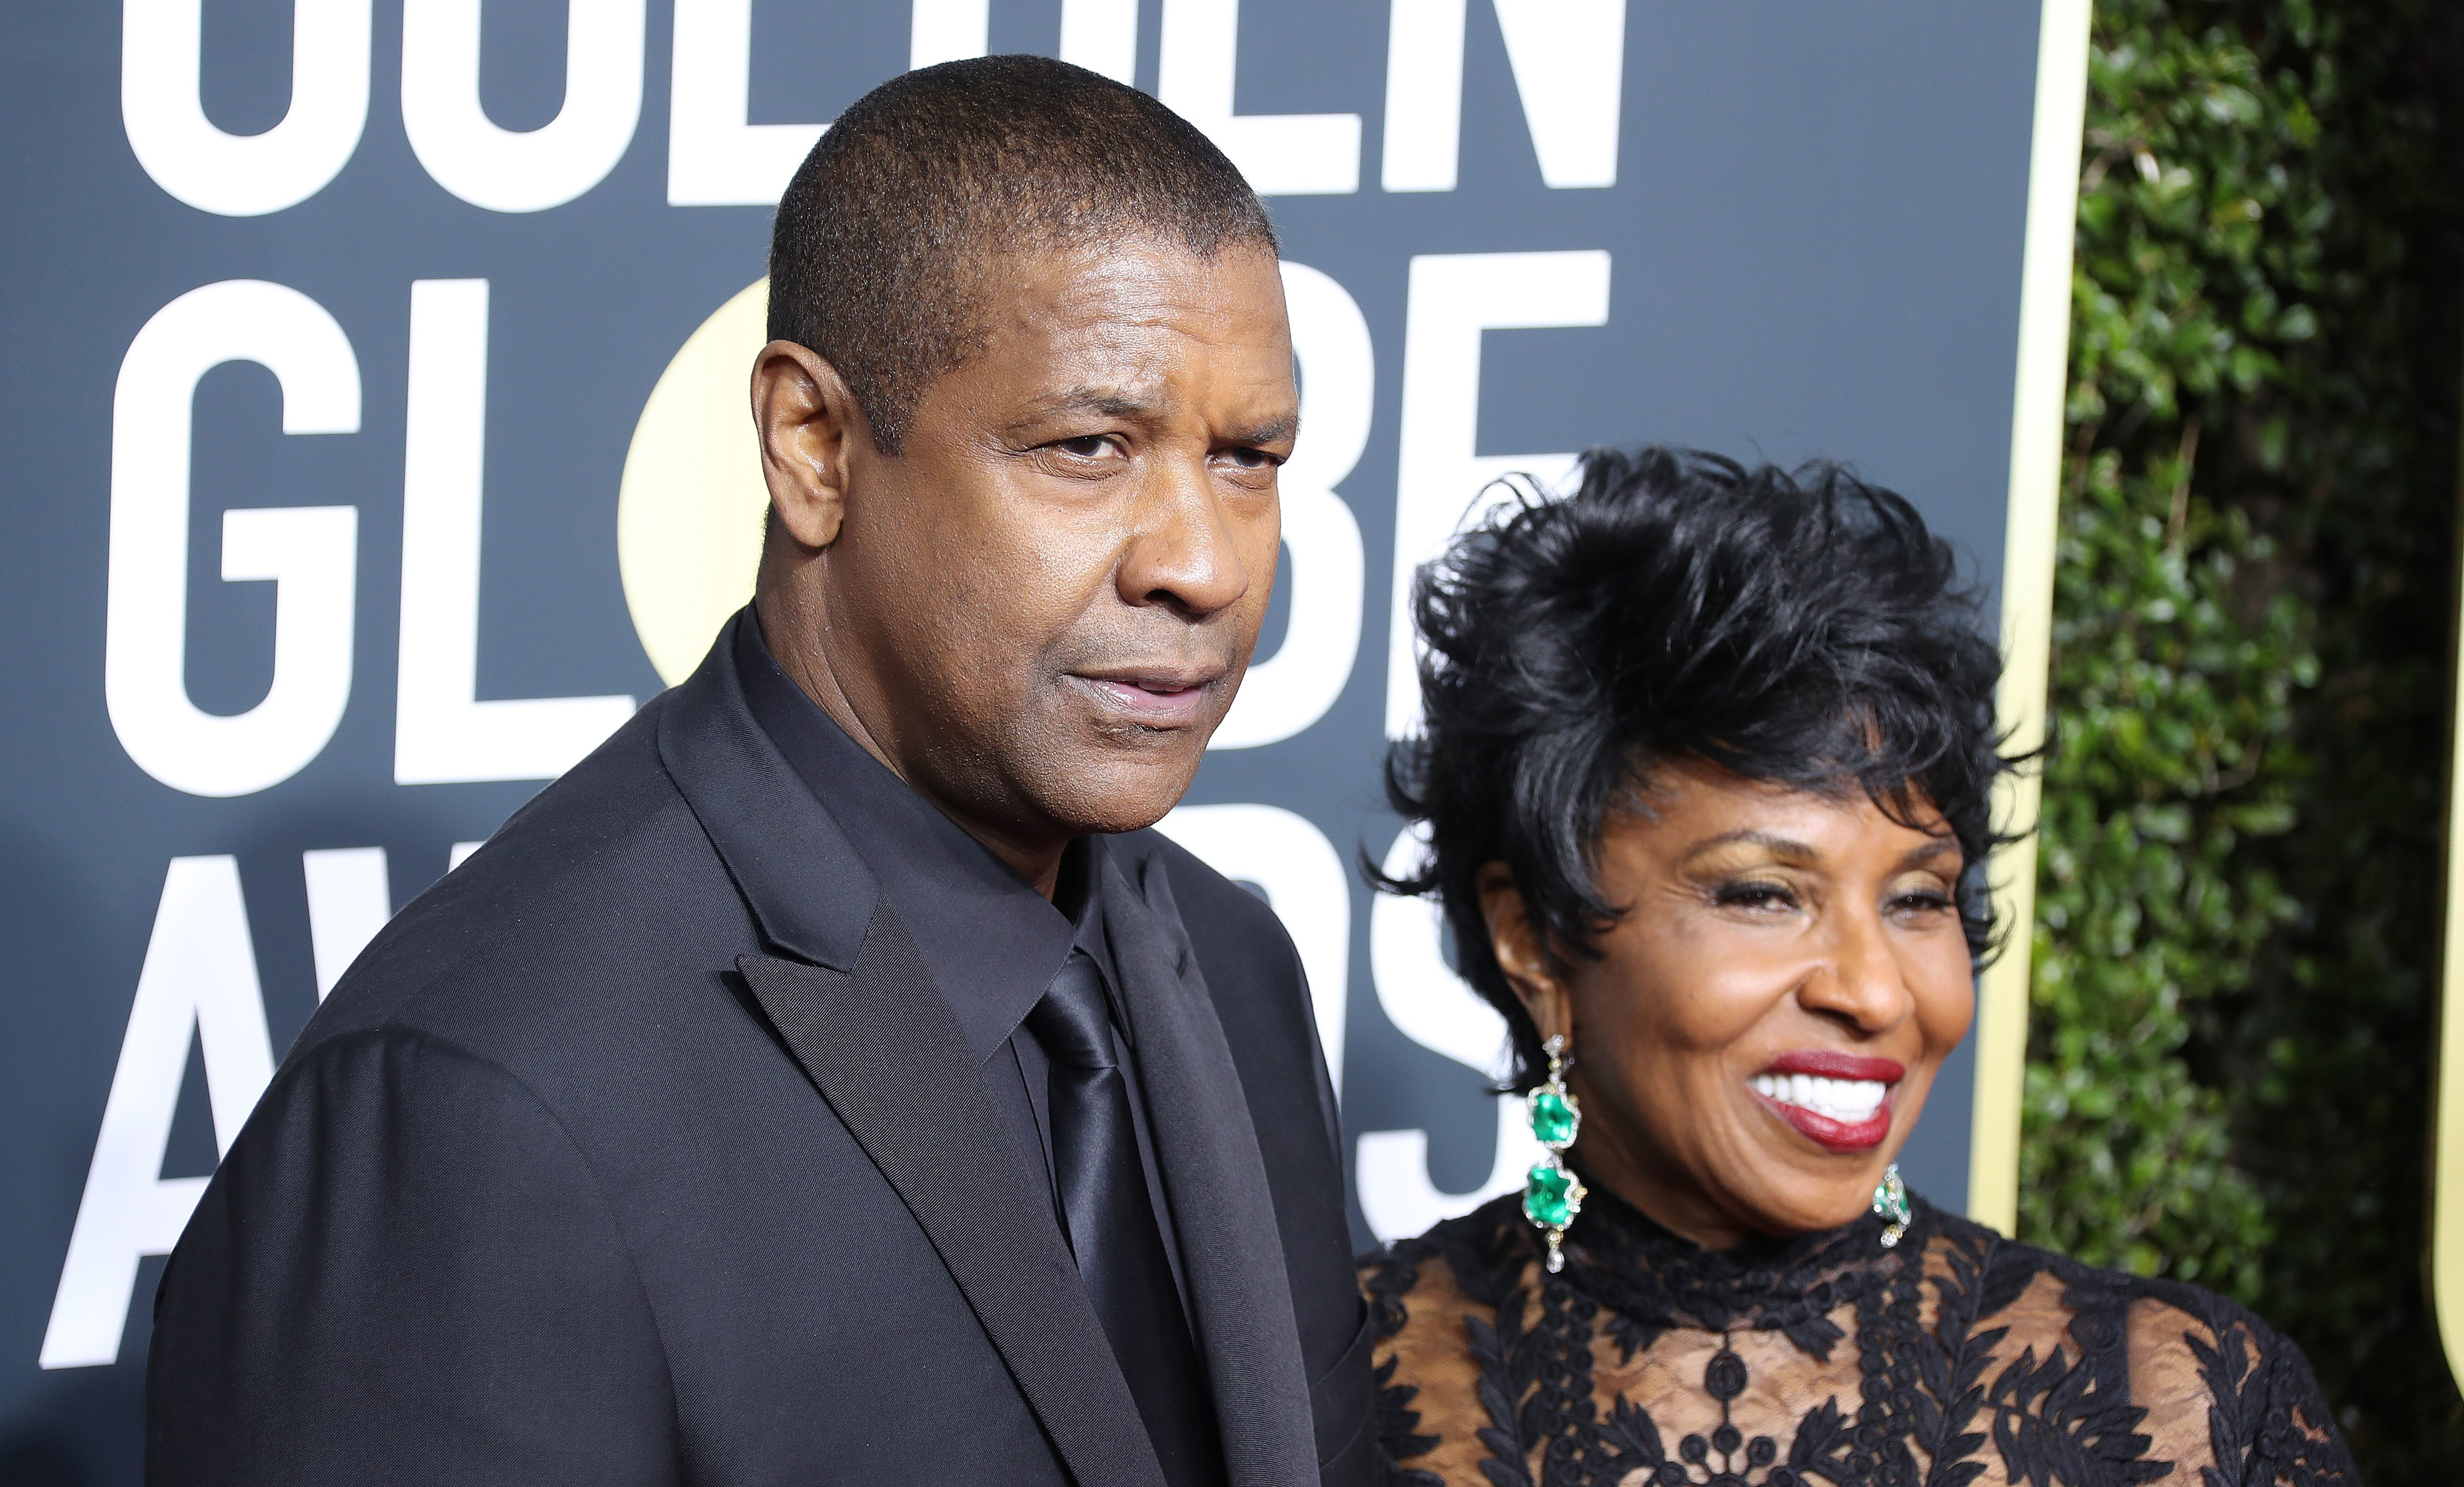 Denzel Washington and his wife, Pauletta Washington, attend the 75th Annual Golden Globe Awards in Beverly Hills on Jan. 7, 2018.